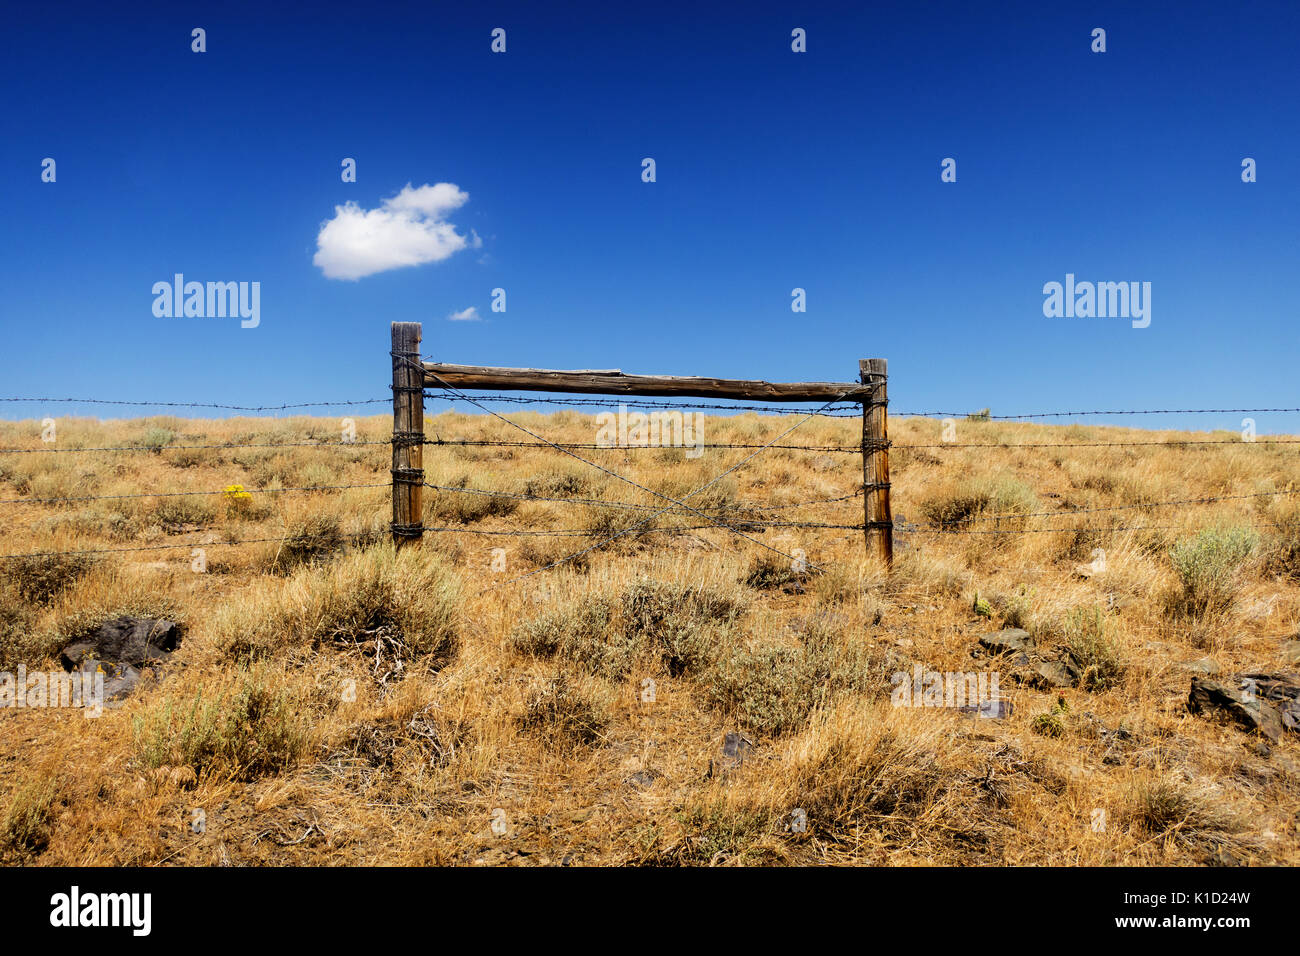 A single cloud hanging over a barbed wire fence in the middle of the desert in Utah. - Stock Image